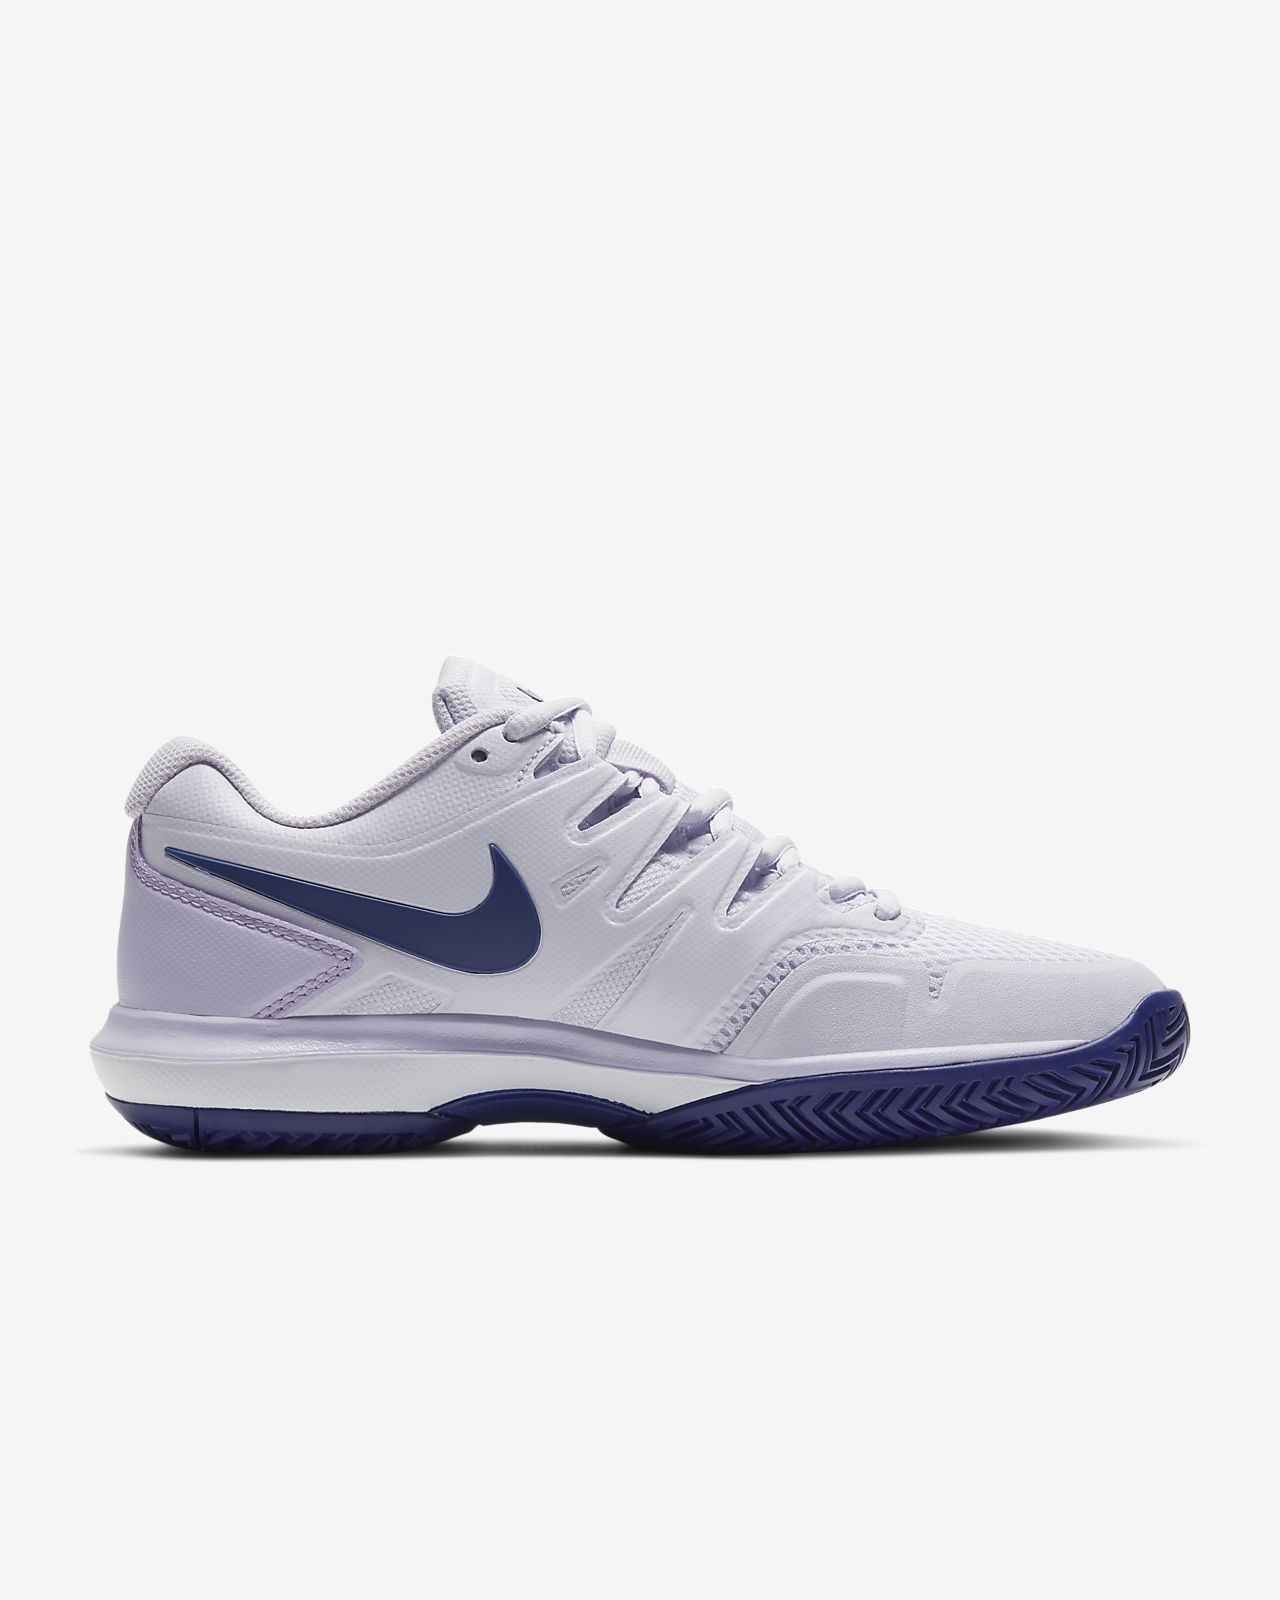 WOMEN'S NIKE AIR ZOOM PRESTIGE ALL COURT SHOES NIKE